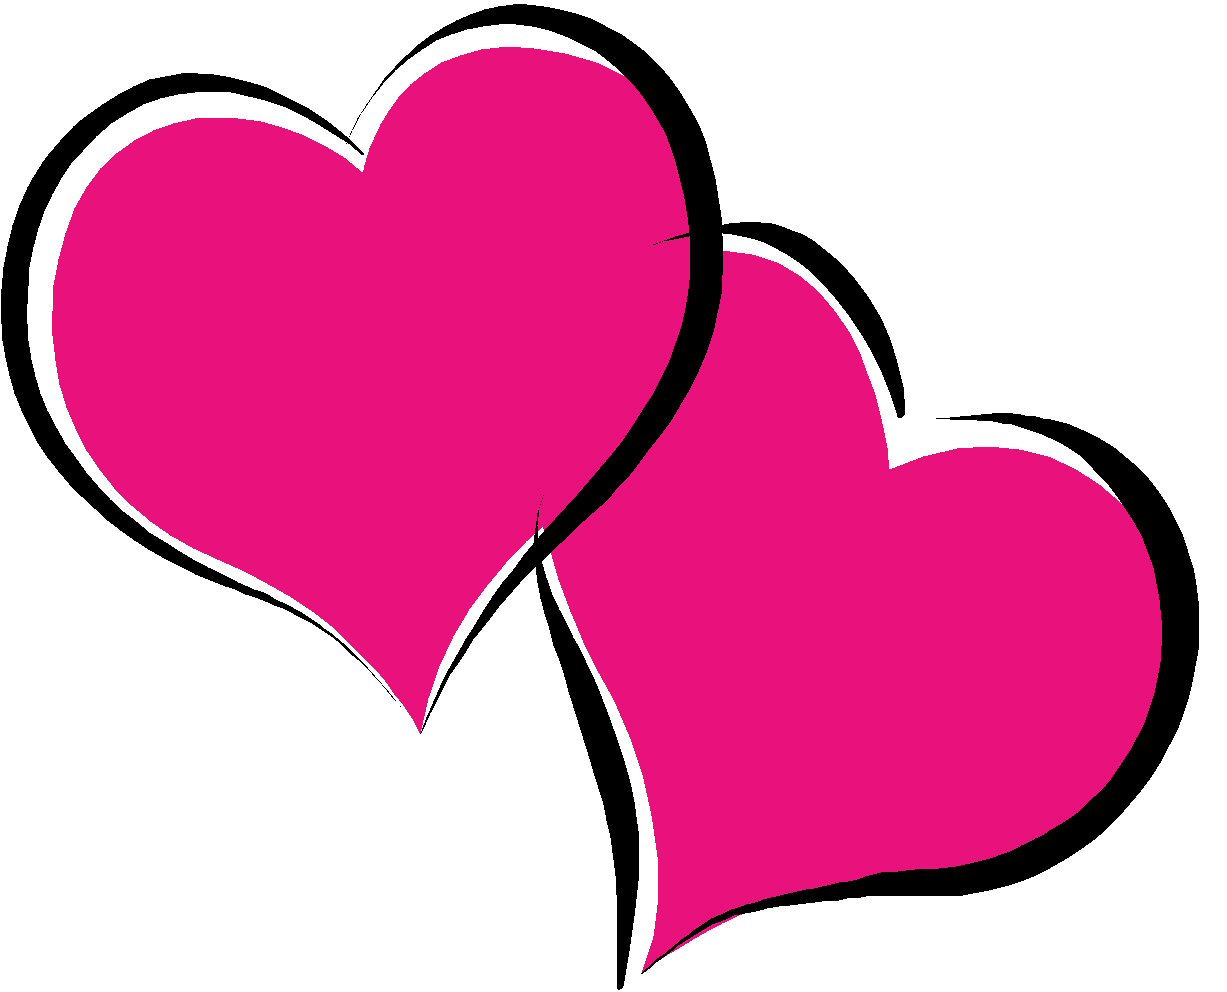 This Cute Valentine S Day Clip Art Lots Of Sweet Cut Valentines Day . 1227 x 992.Animated Cute Happy Valentine's Day Images